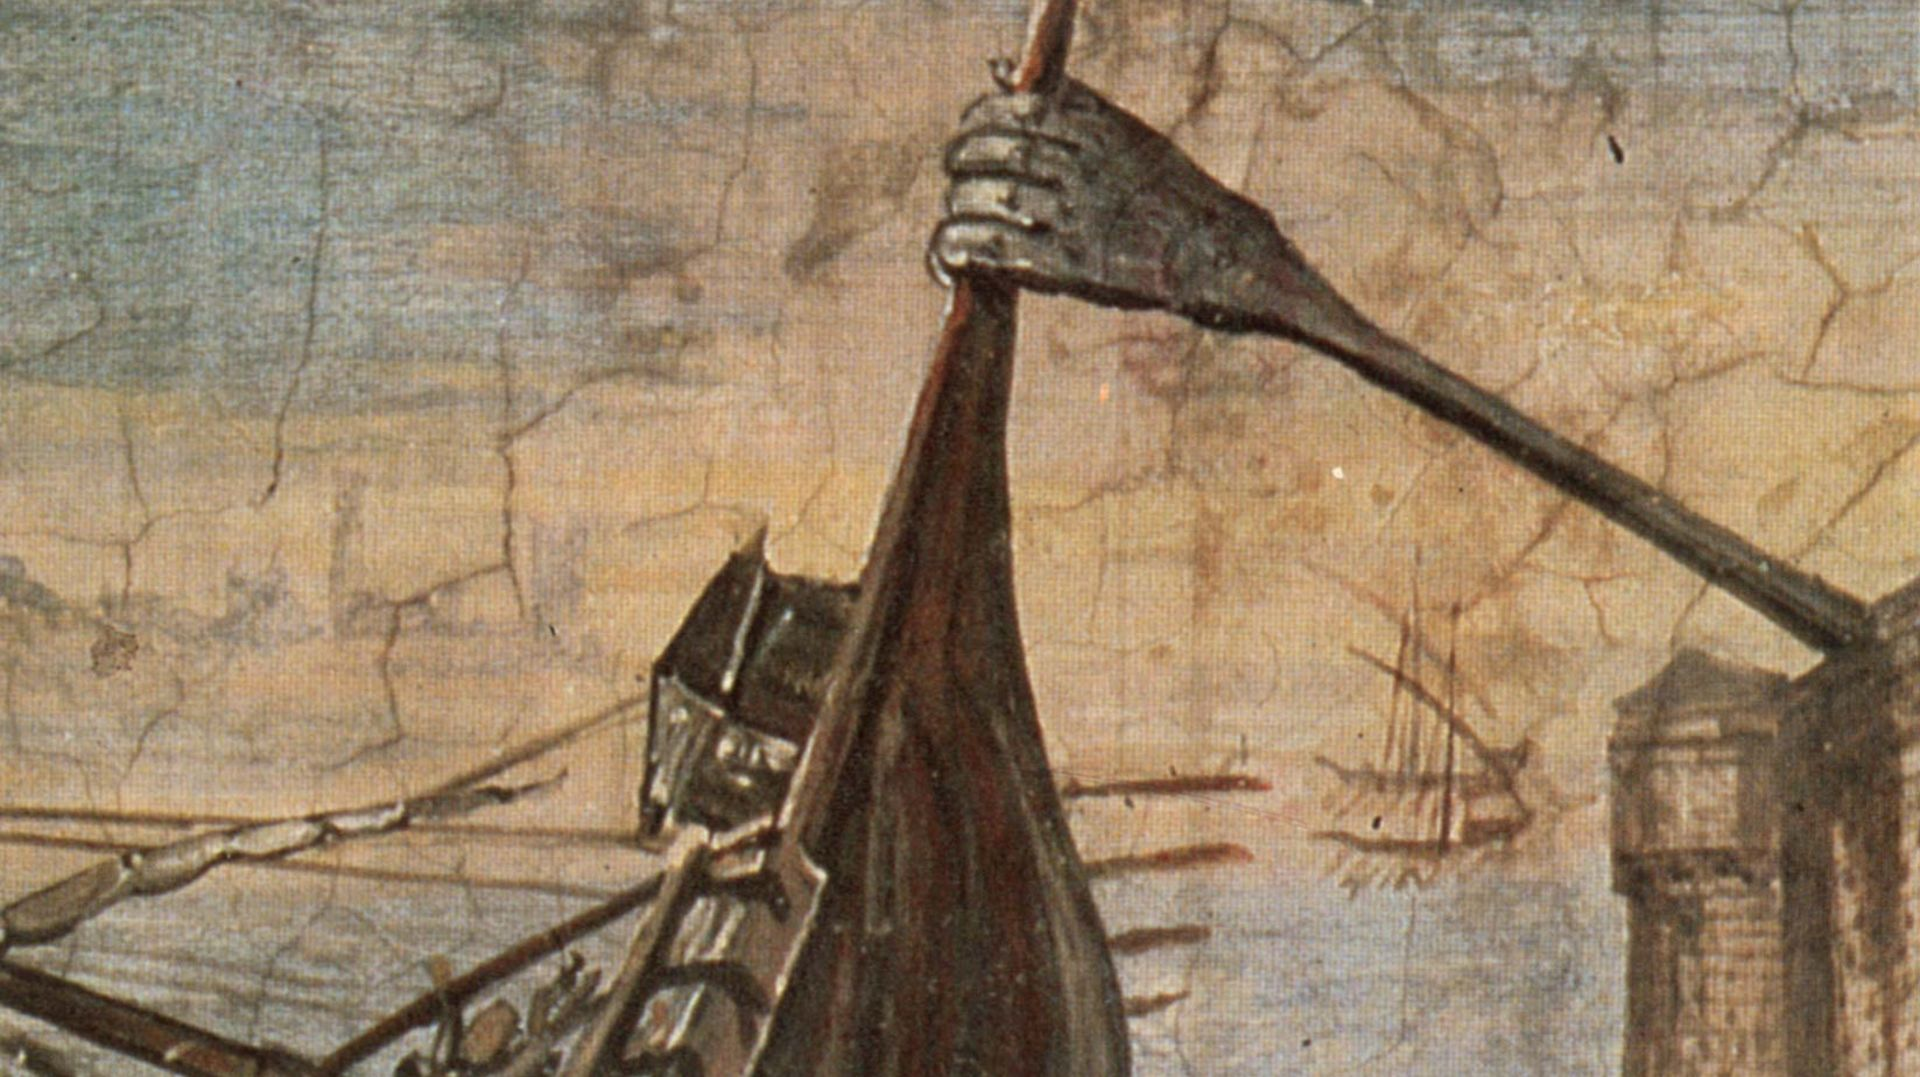 10 Weird Weapons and Gadgets From Military History